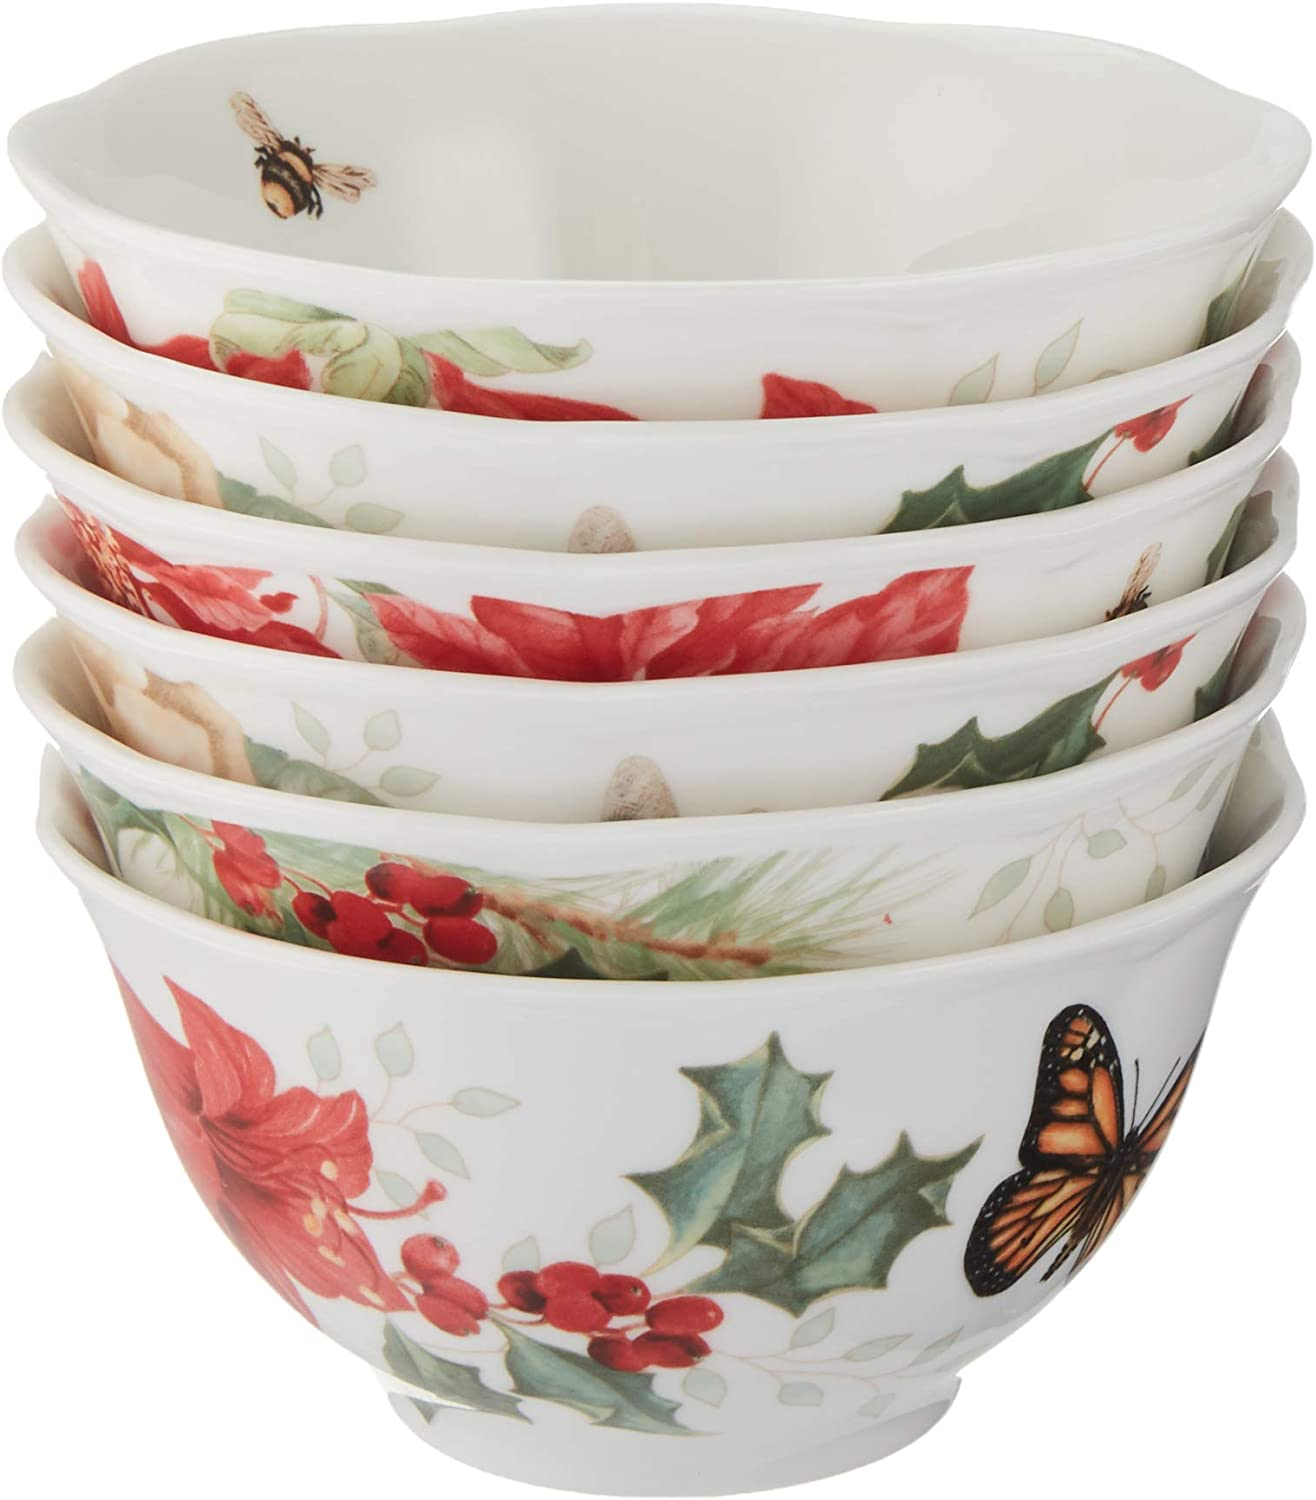 Lenox 880092? Butterfly Meadow Holiday Rice Bowls, Multicolor